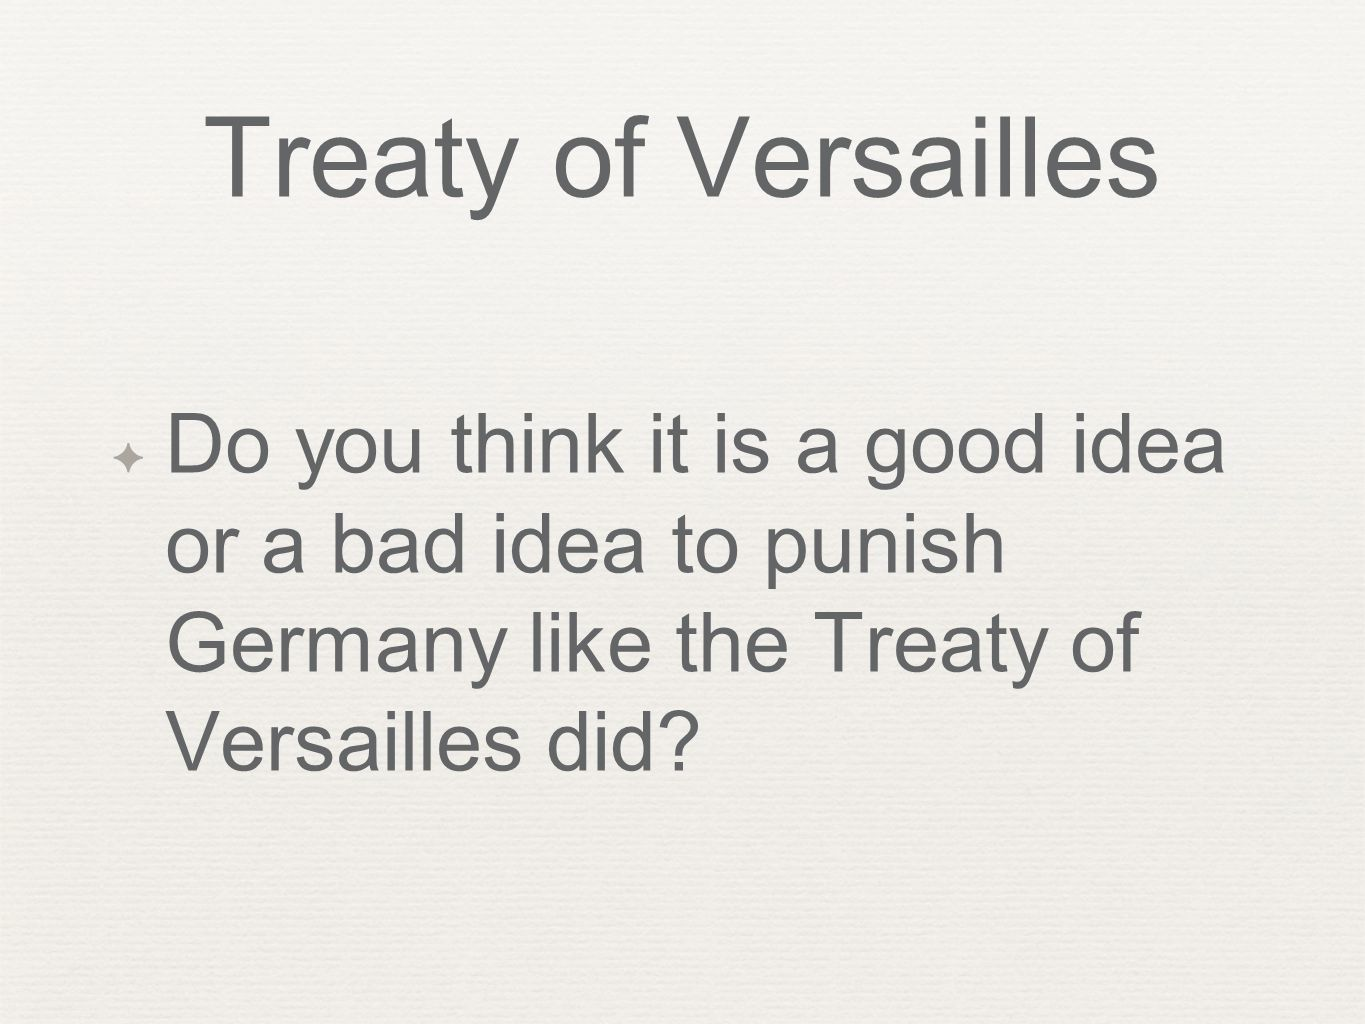 Treaty of Versailles ✦ Do you think it is a good idea or a bad idea to punish Germany like the Treaty of Versailles did?